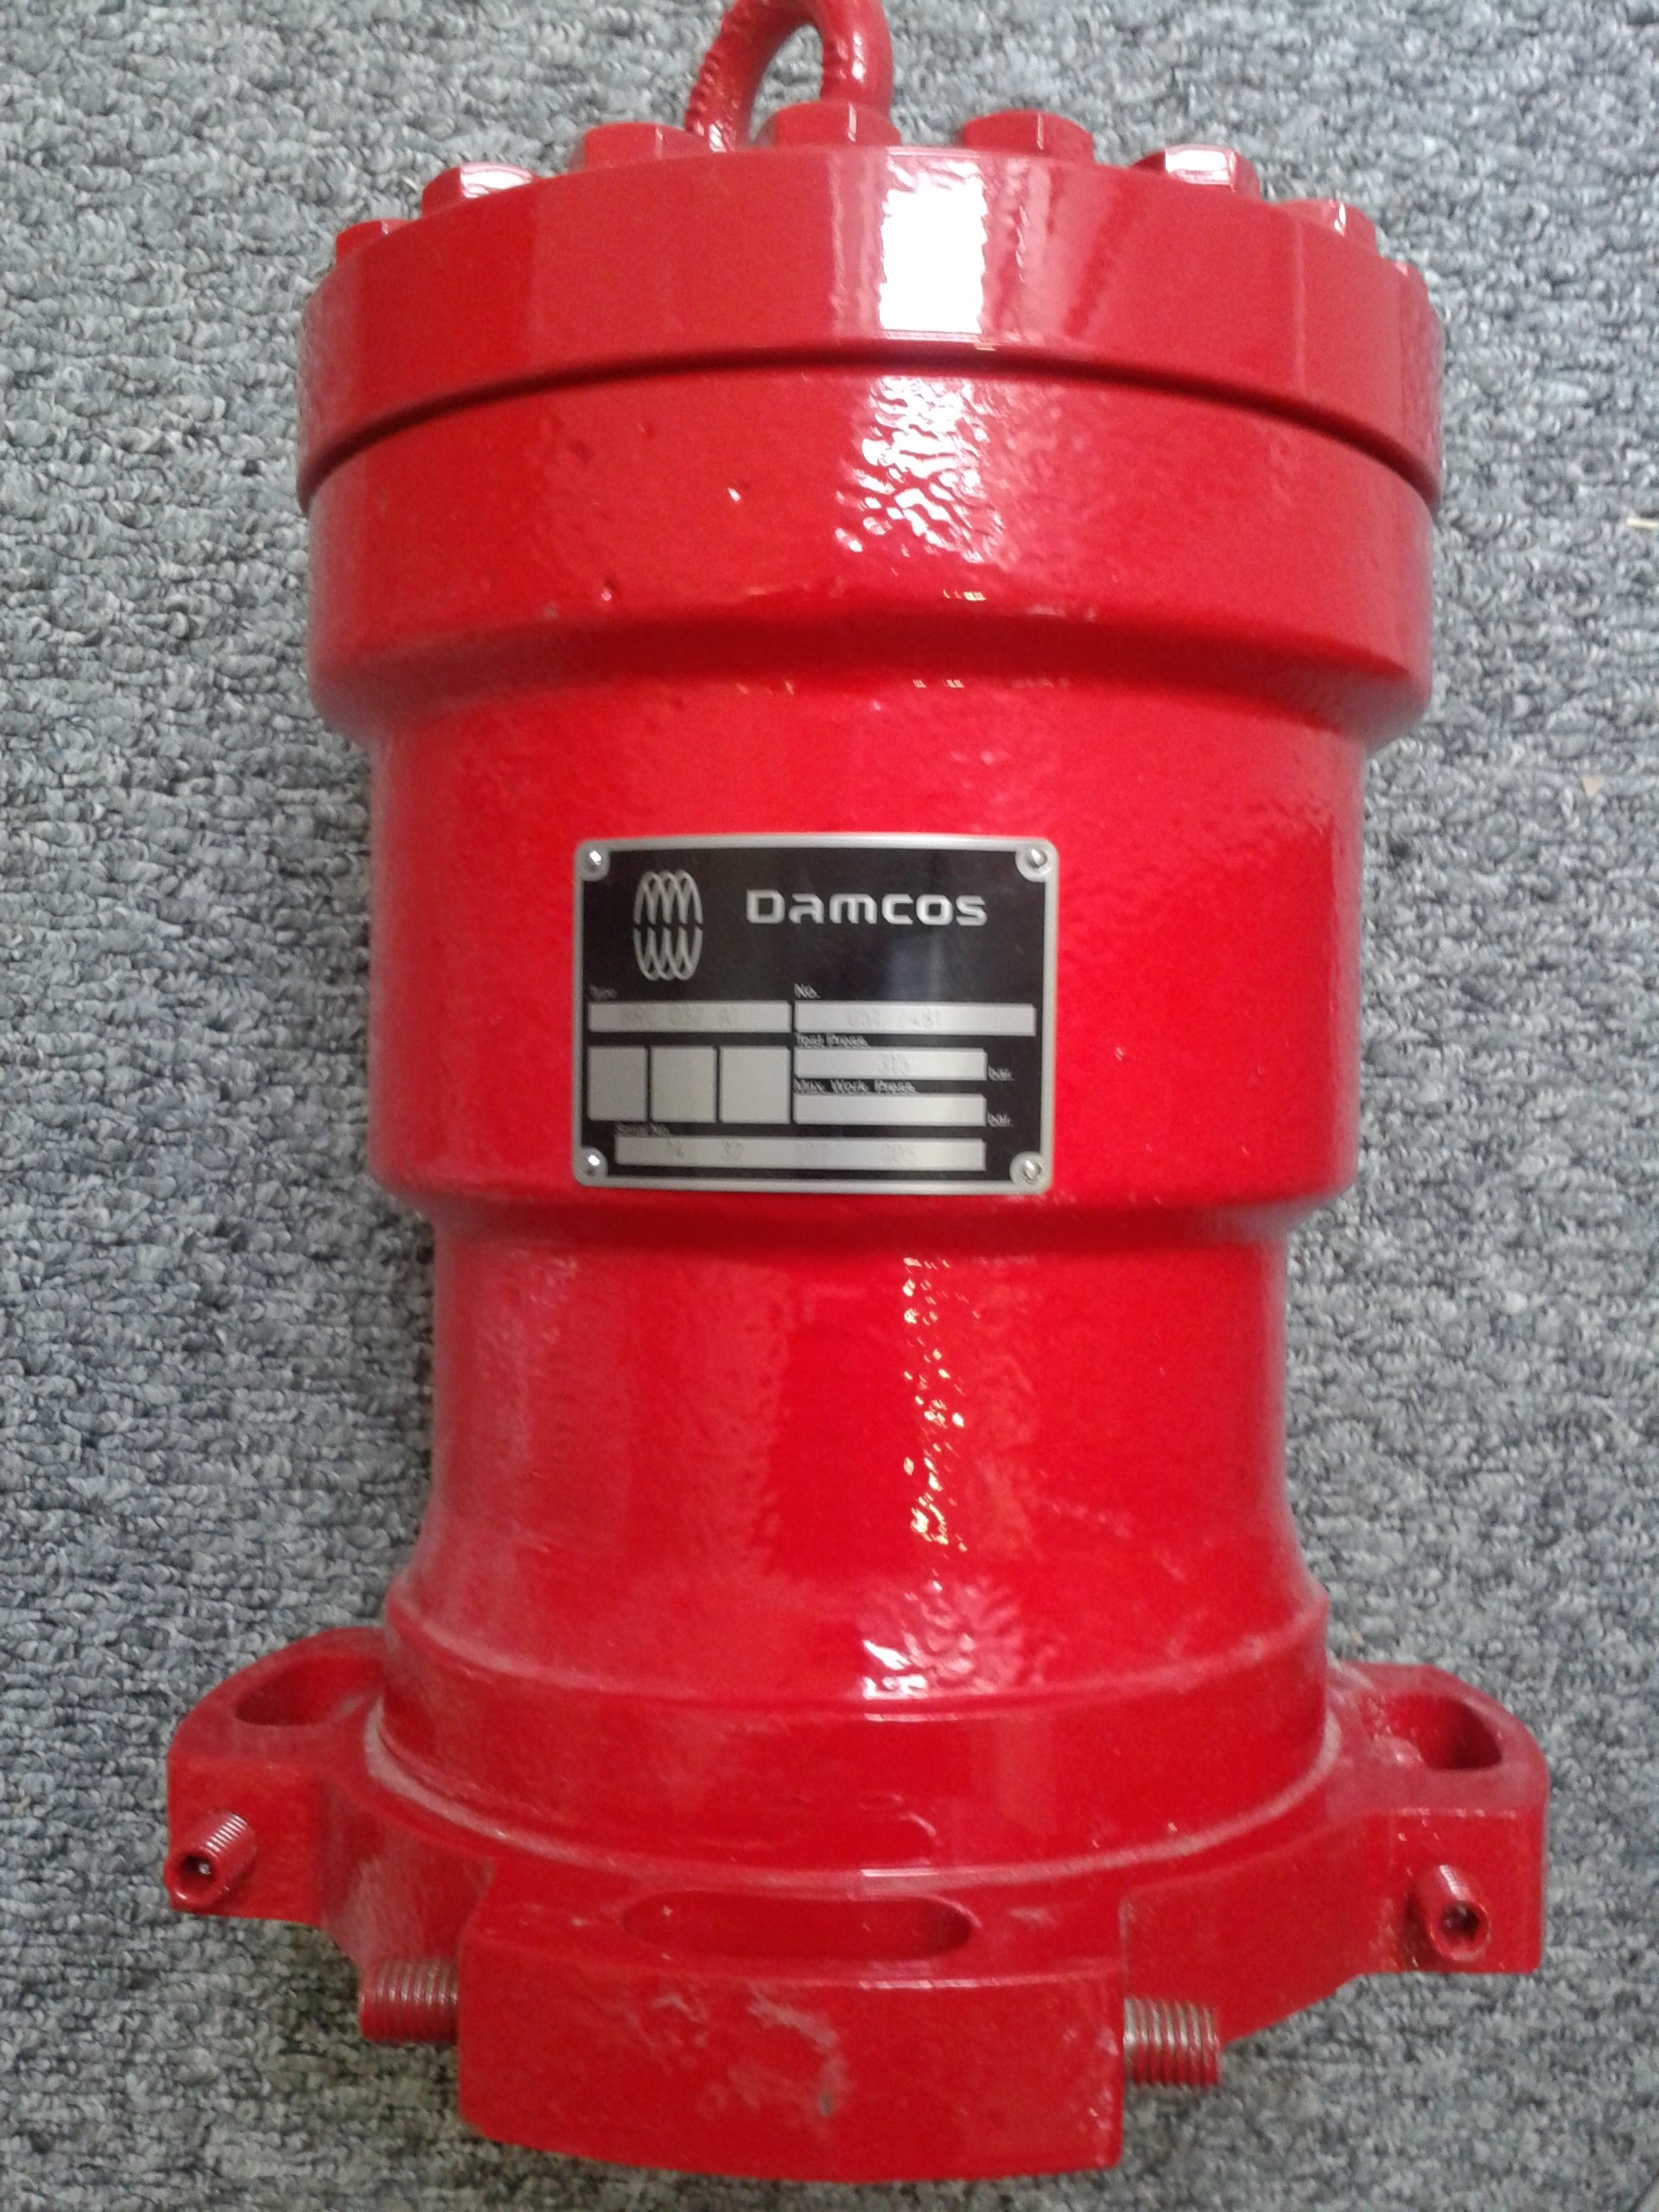 Damcos:Danfoss BRC 032-A1 (Part No- 051-2481) Hydraulic